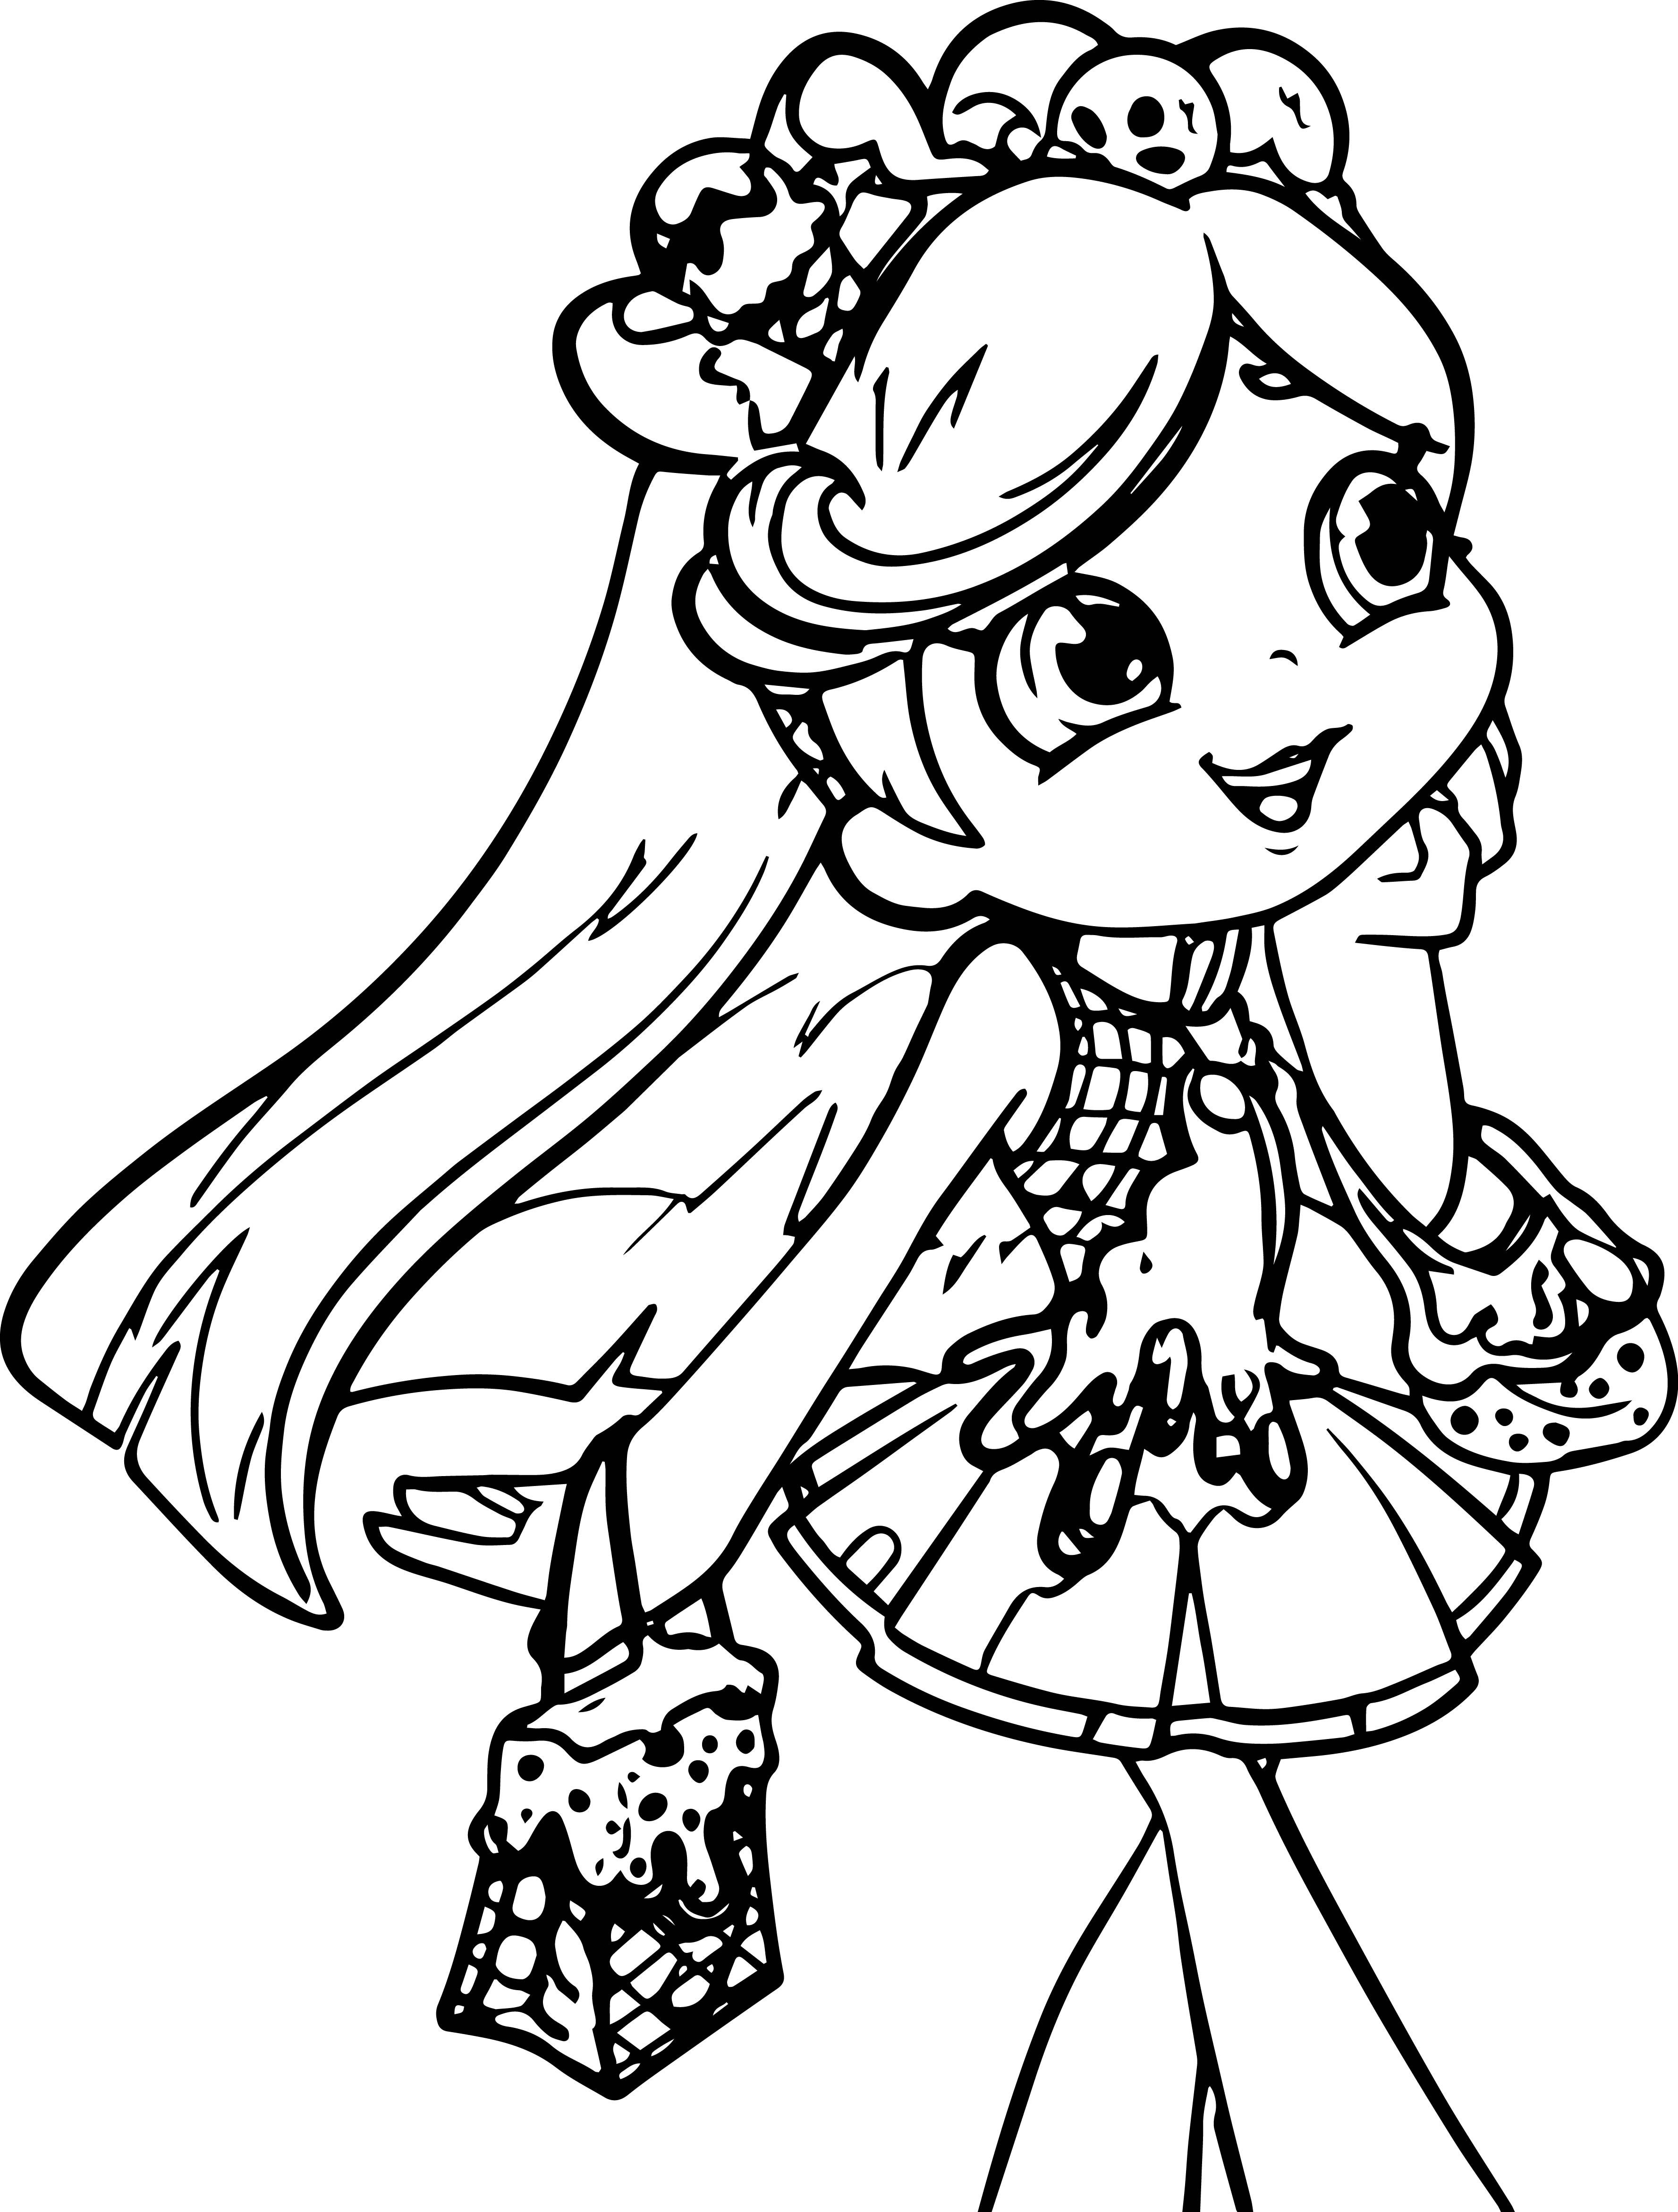 coloring pages for girls coloring for kids shopkins colouring pages christmas coloring pages